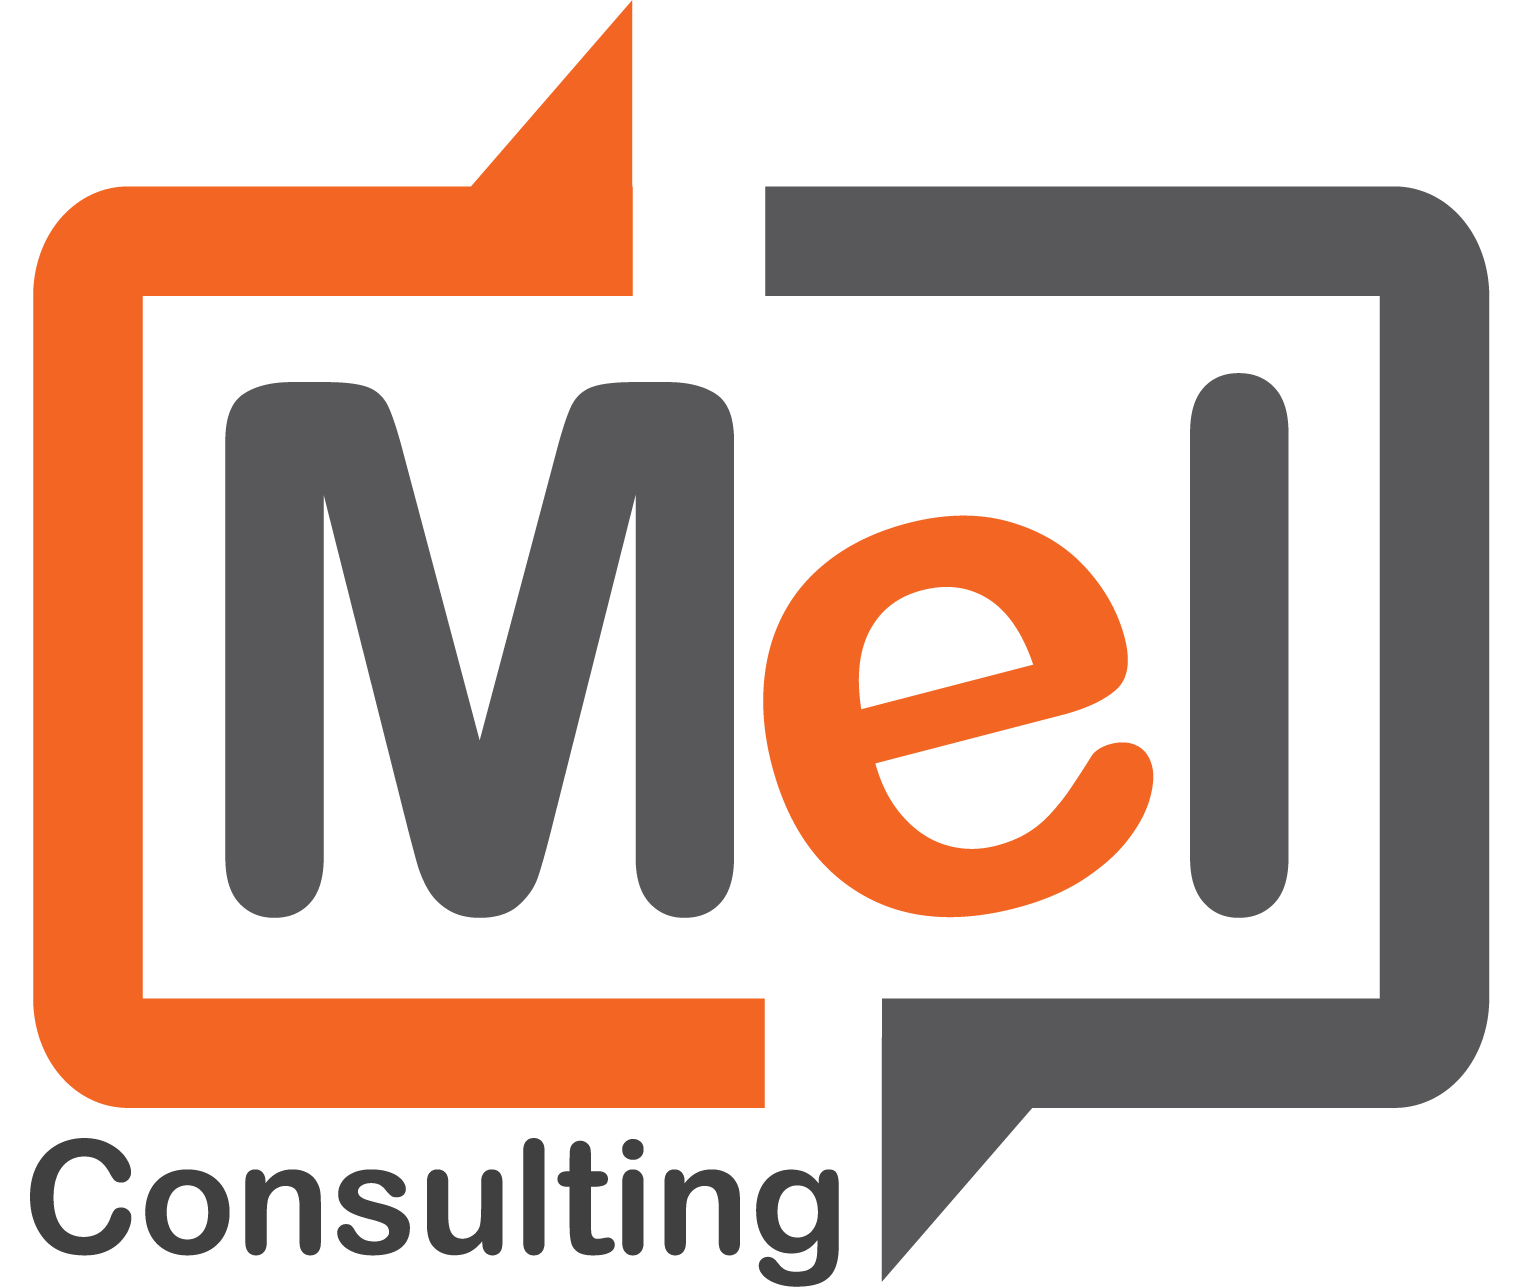 mel_consulting_logo